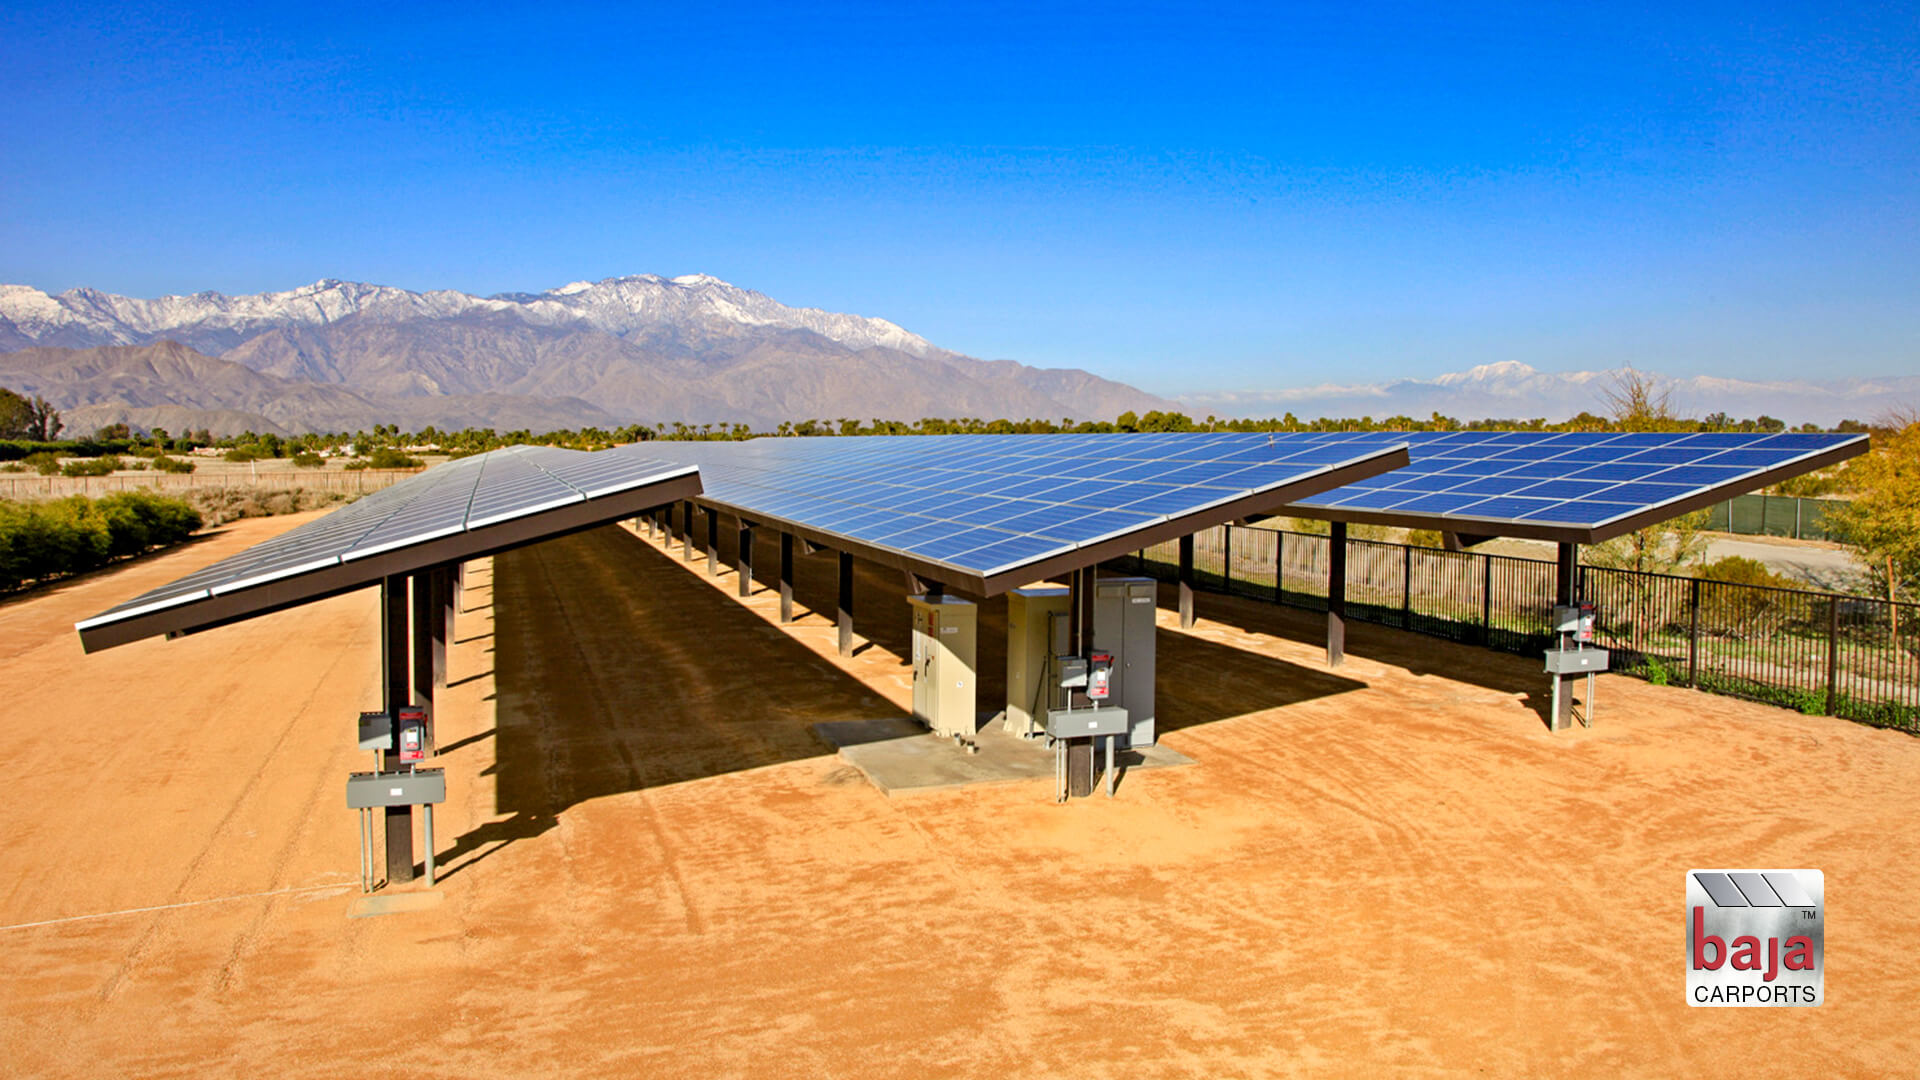 ground mount solar support system baja carports installed